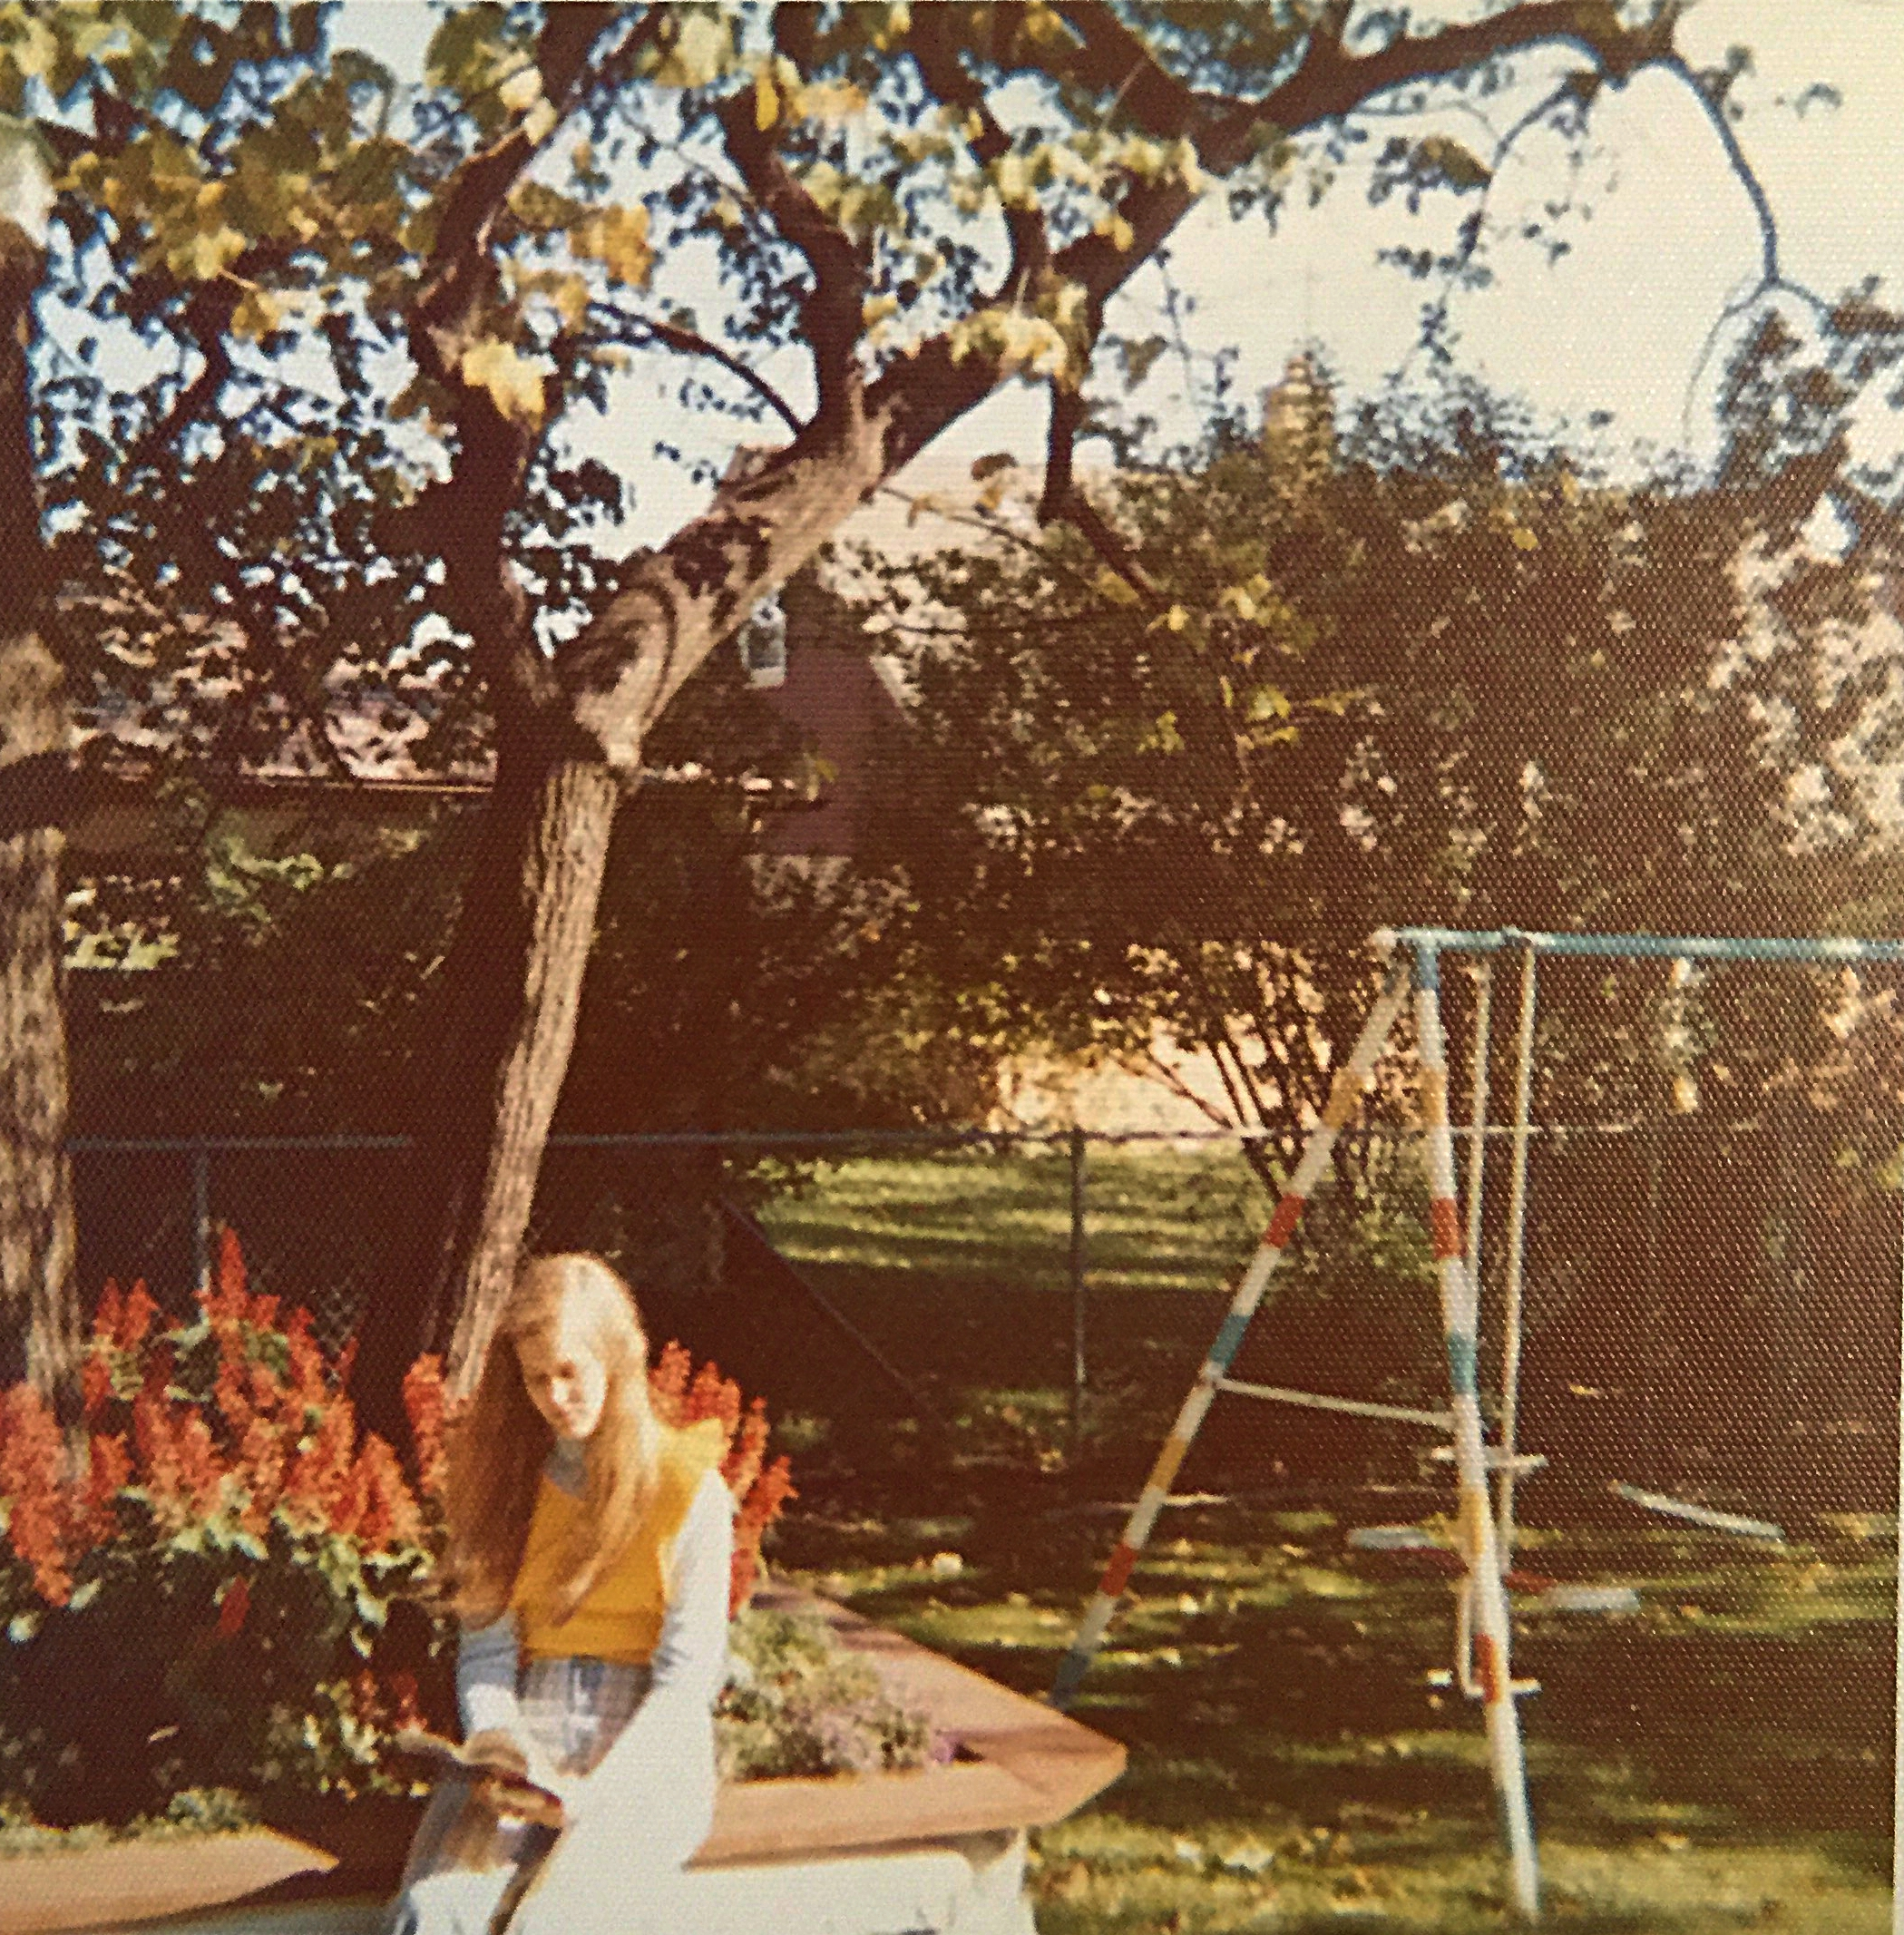 Reading is important to writers. When my mother suggested I go outside to get some fresh air, I usually took a book with me. This is a high school snapshot.